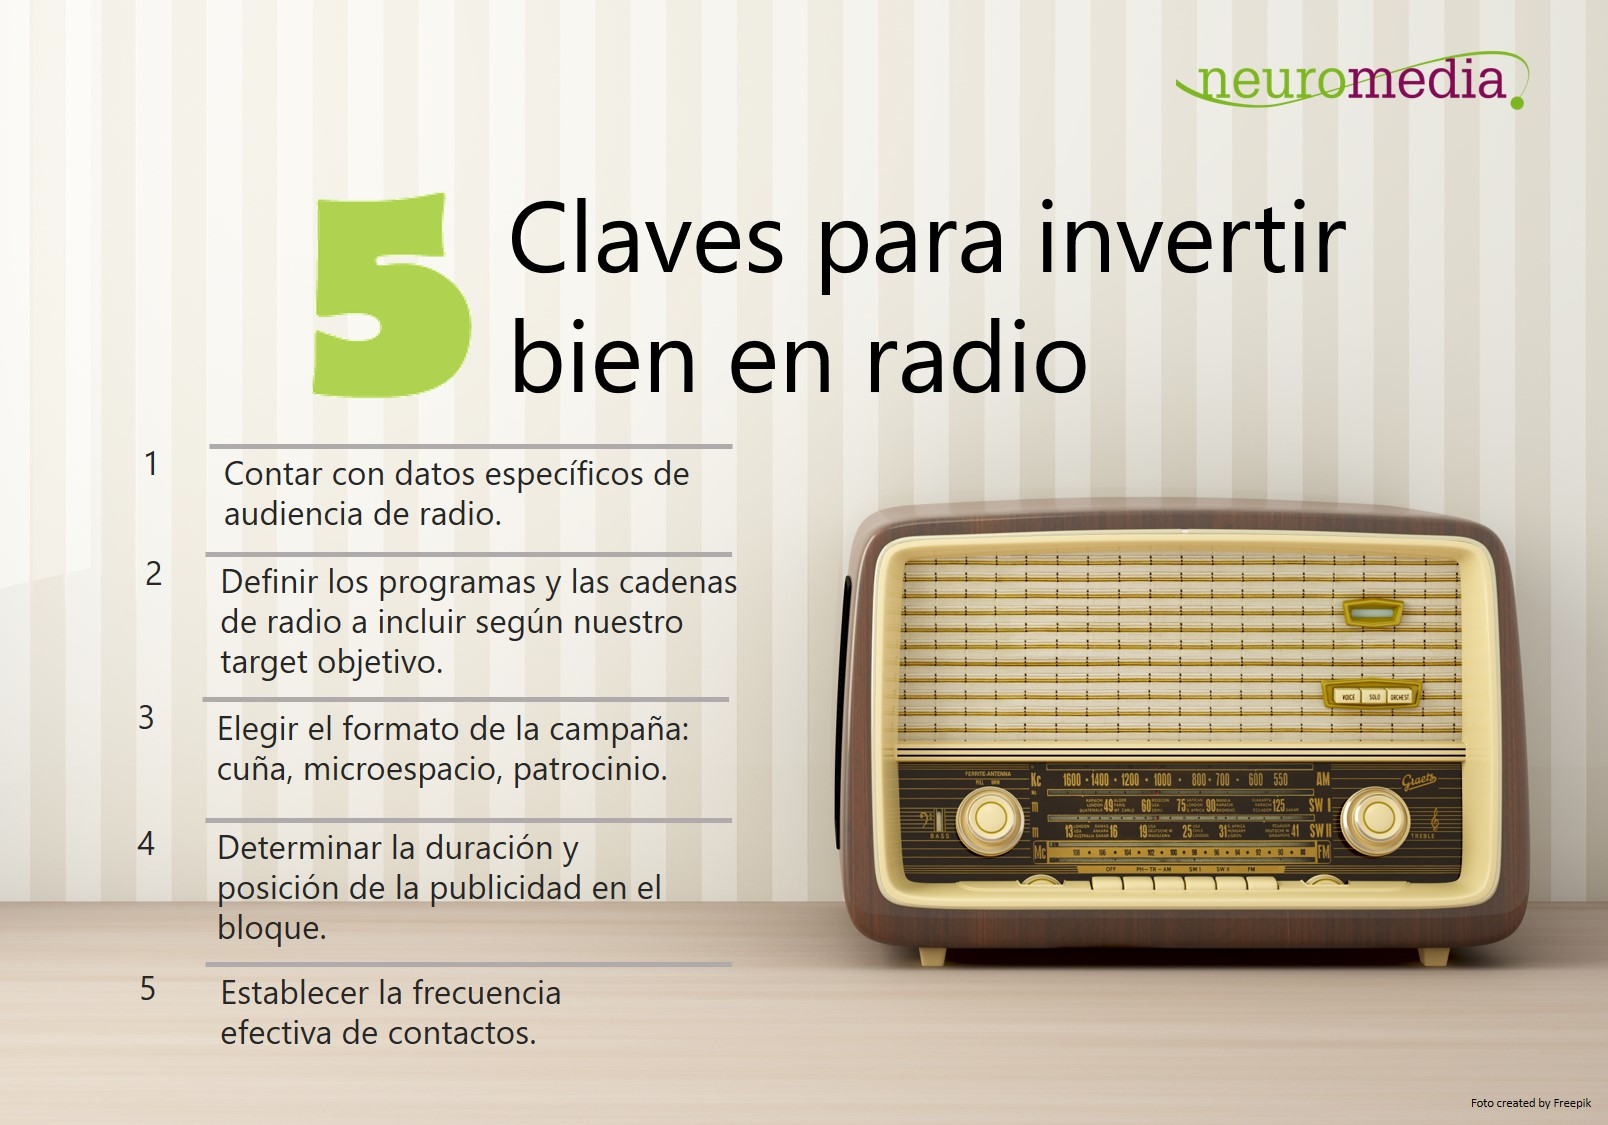 Claves para invertir en radio_Neuromedia